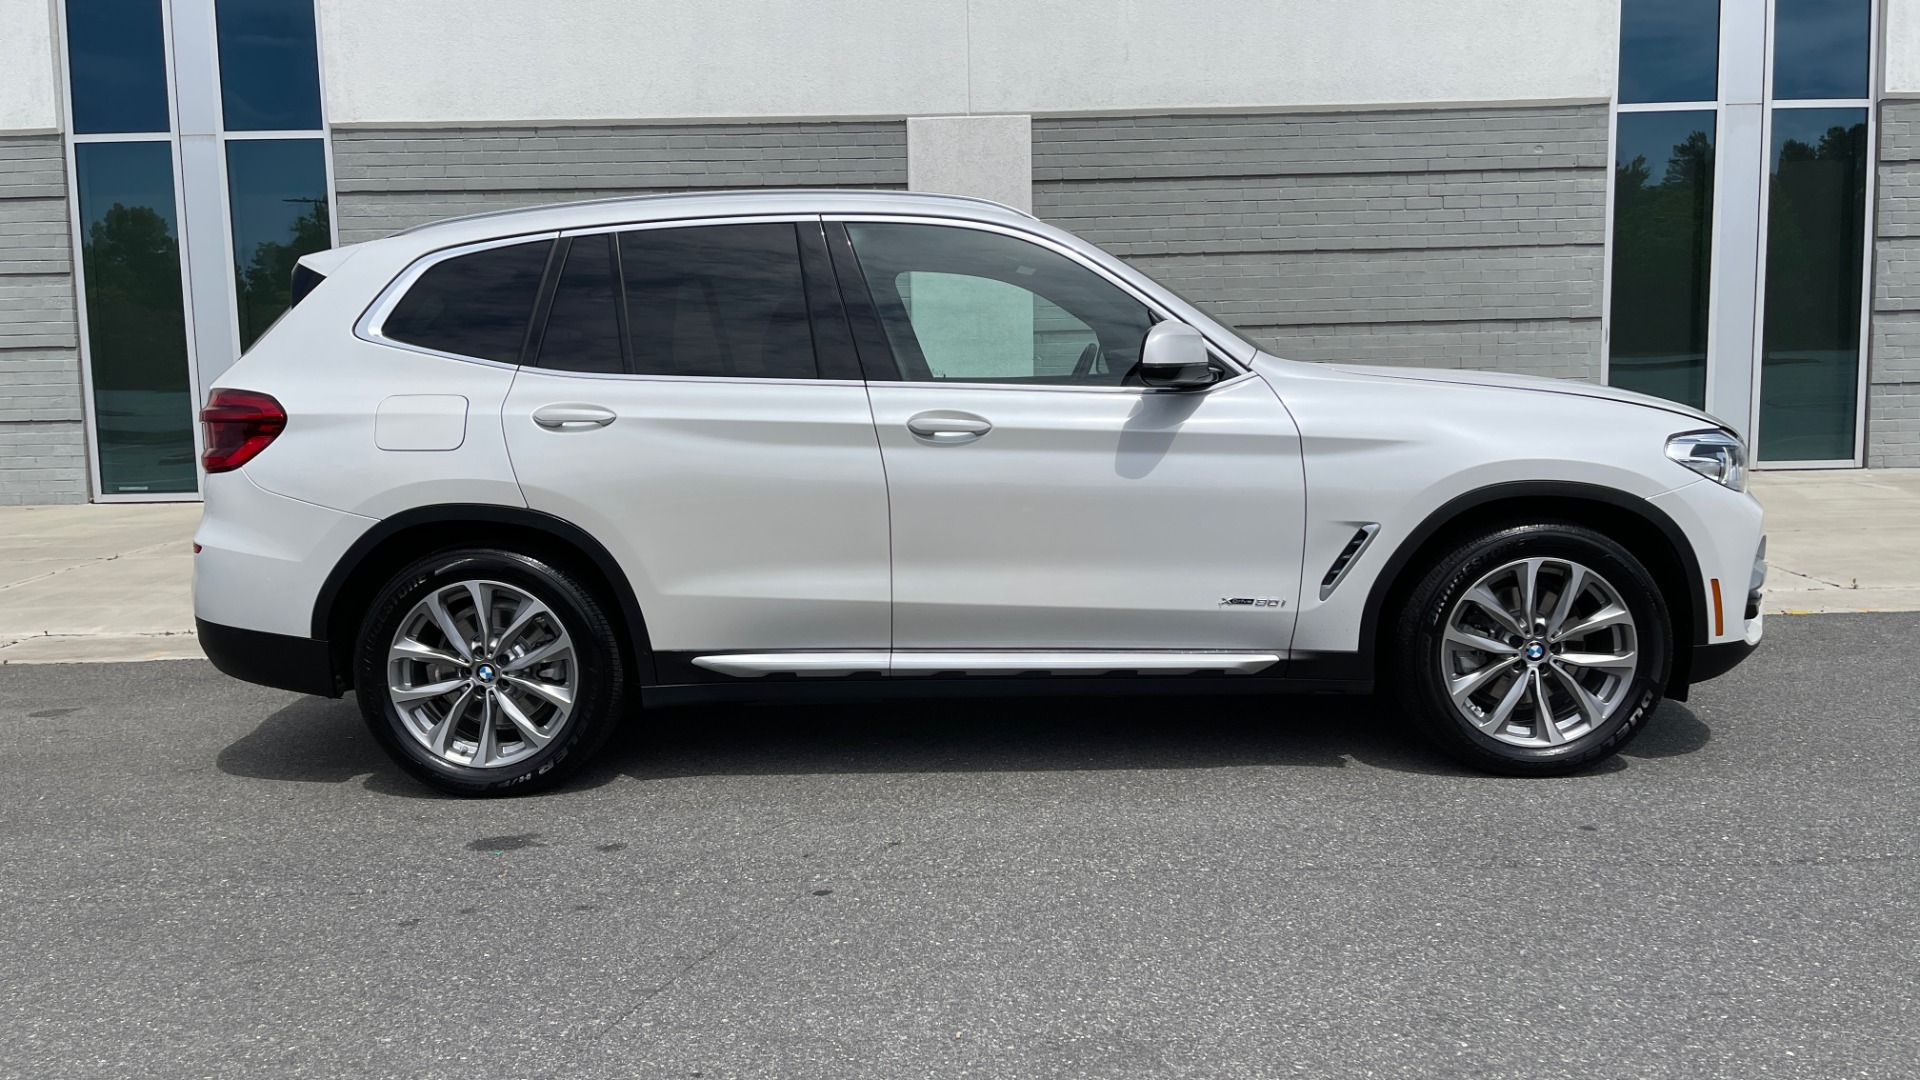 Used 2018 BMW X3 XDRIVE30I PREMIUM / NAV / DRVR ASST / CONV PKG / SUNROOF / REARVIEW for sale $32,695 at Formula Imports in Charlotte NC 28227 3